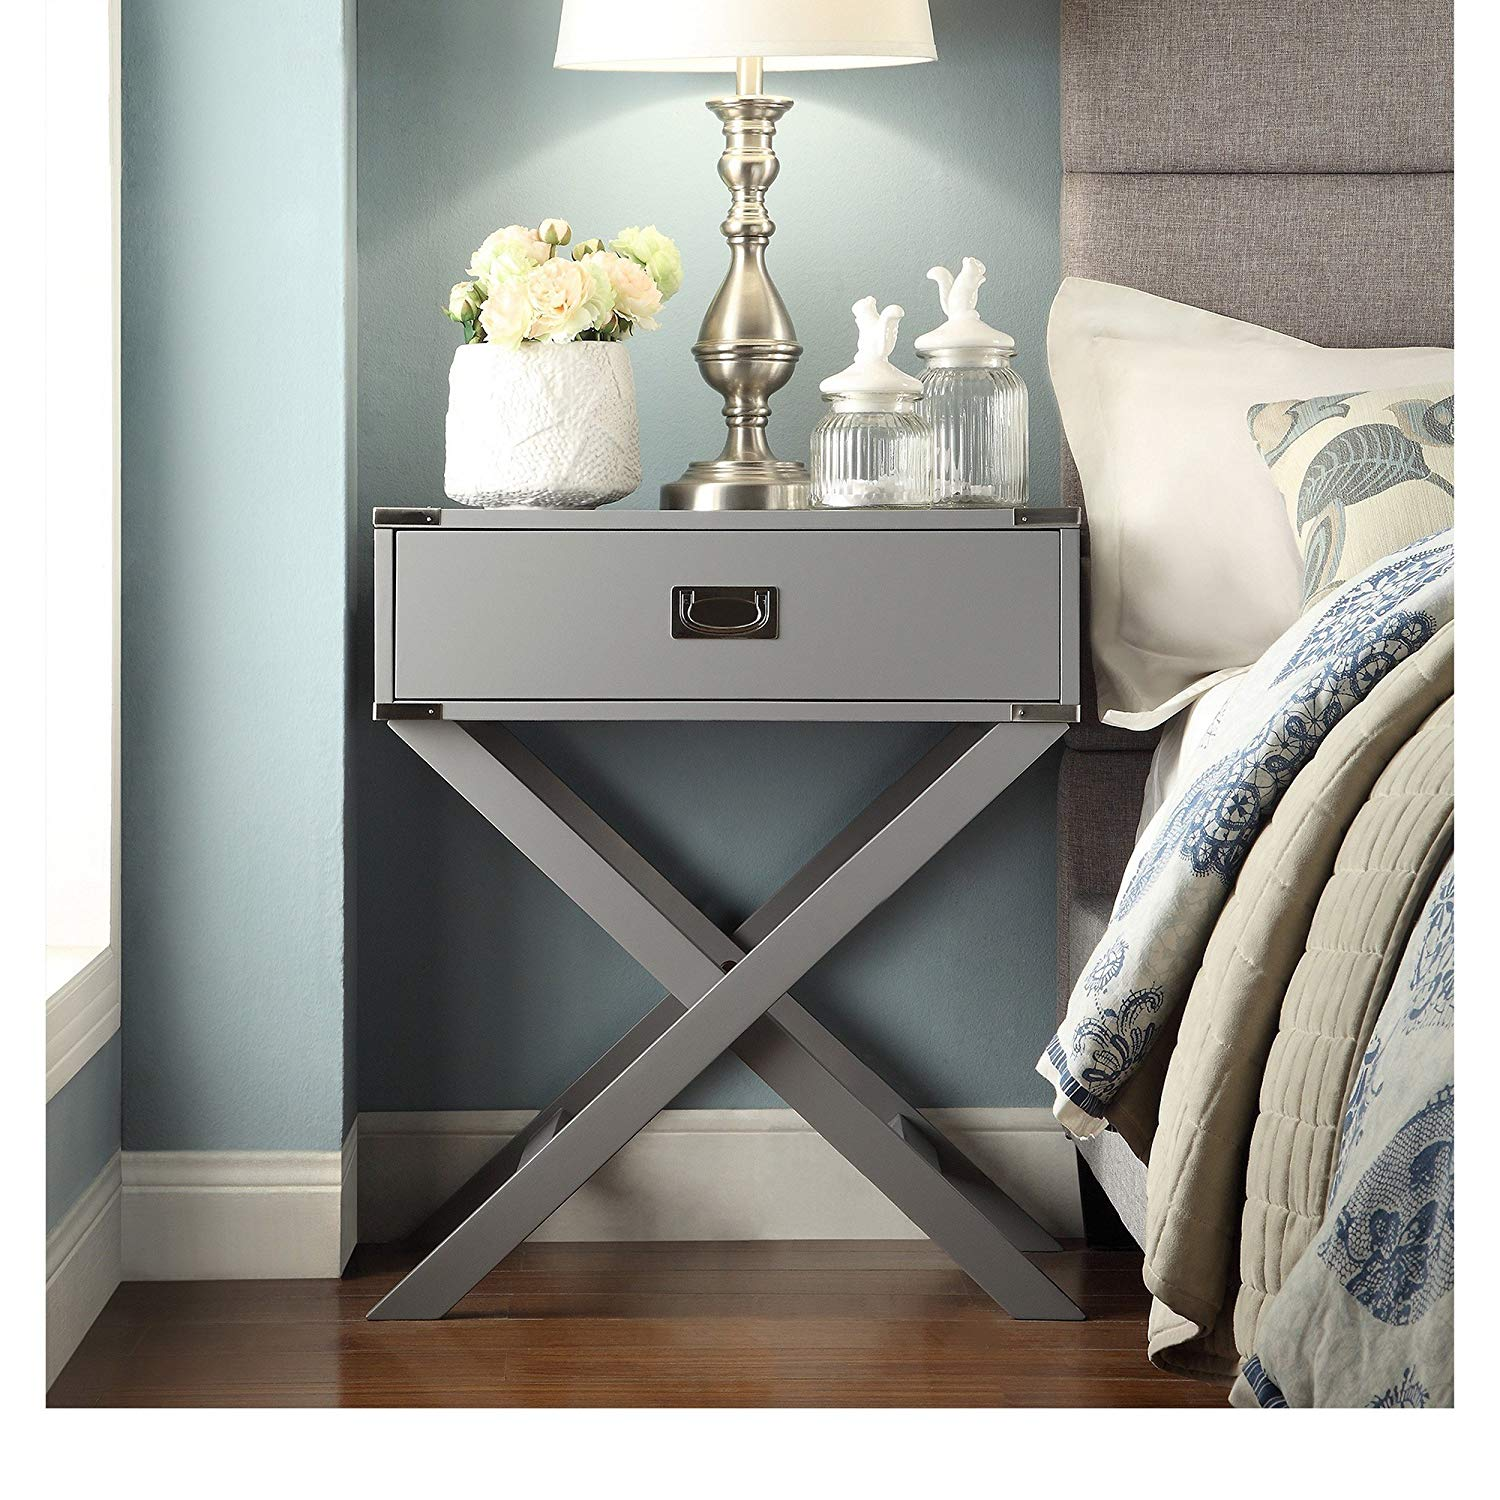 modhaus living modern wood accent base nightstand table campaign sofa rectangle shaped with storage drawer includes pen gray kitchen target end tall thin bedside home interiors